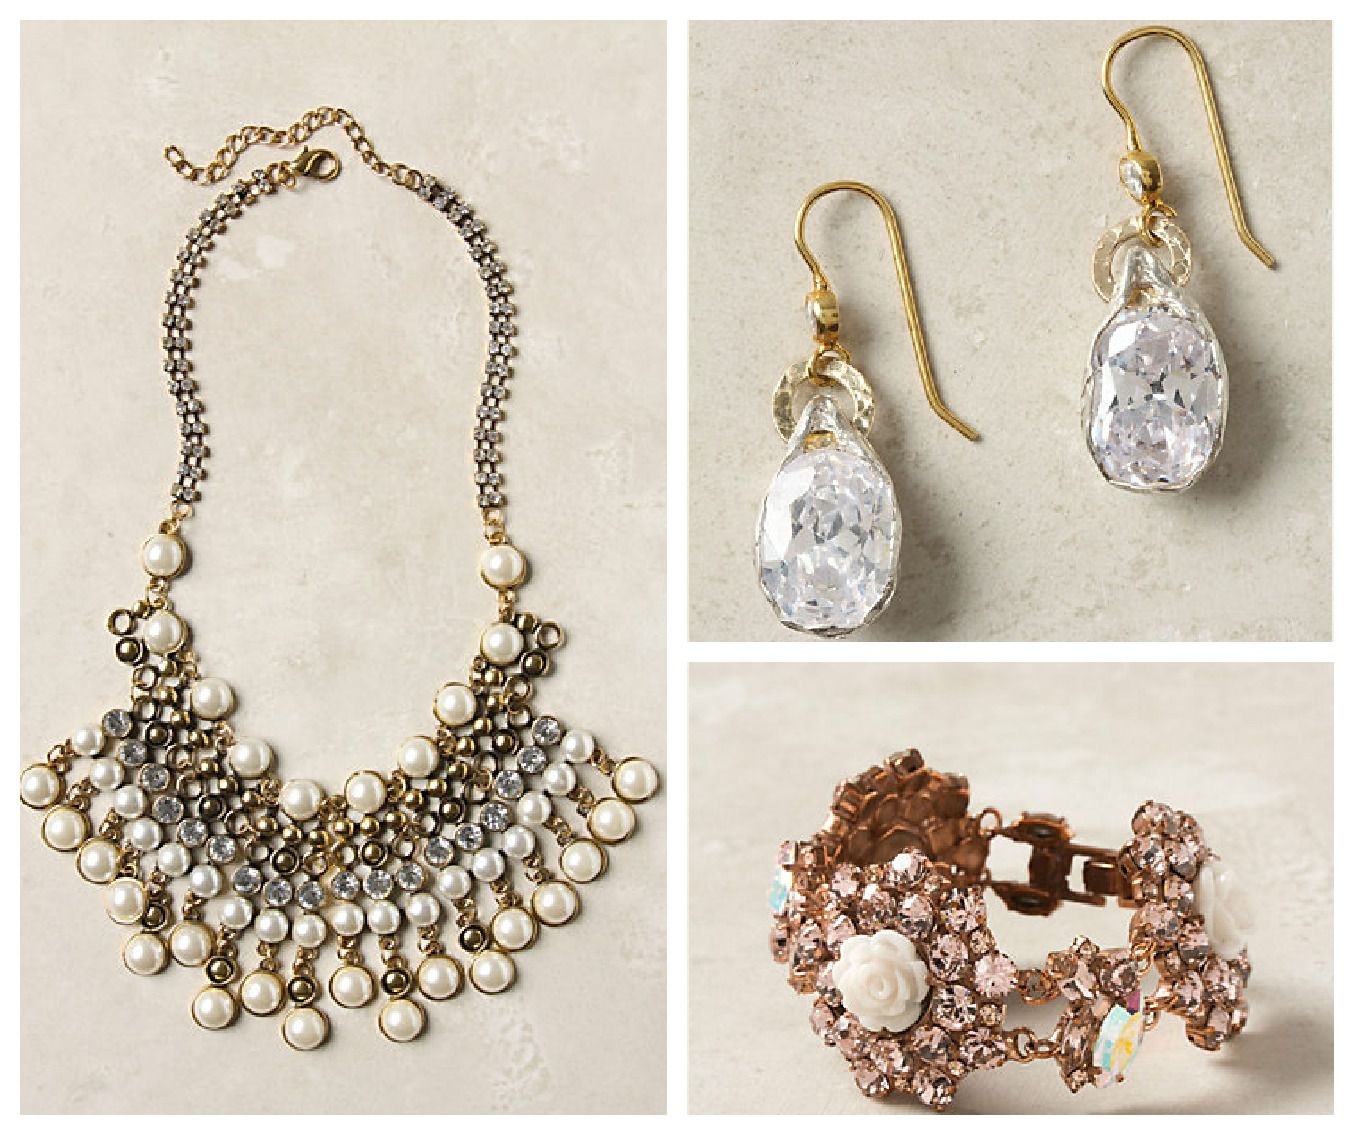 jewelry-for-vintage-style-wedding